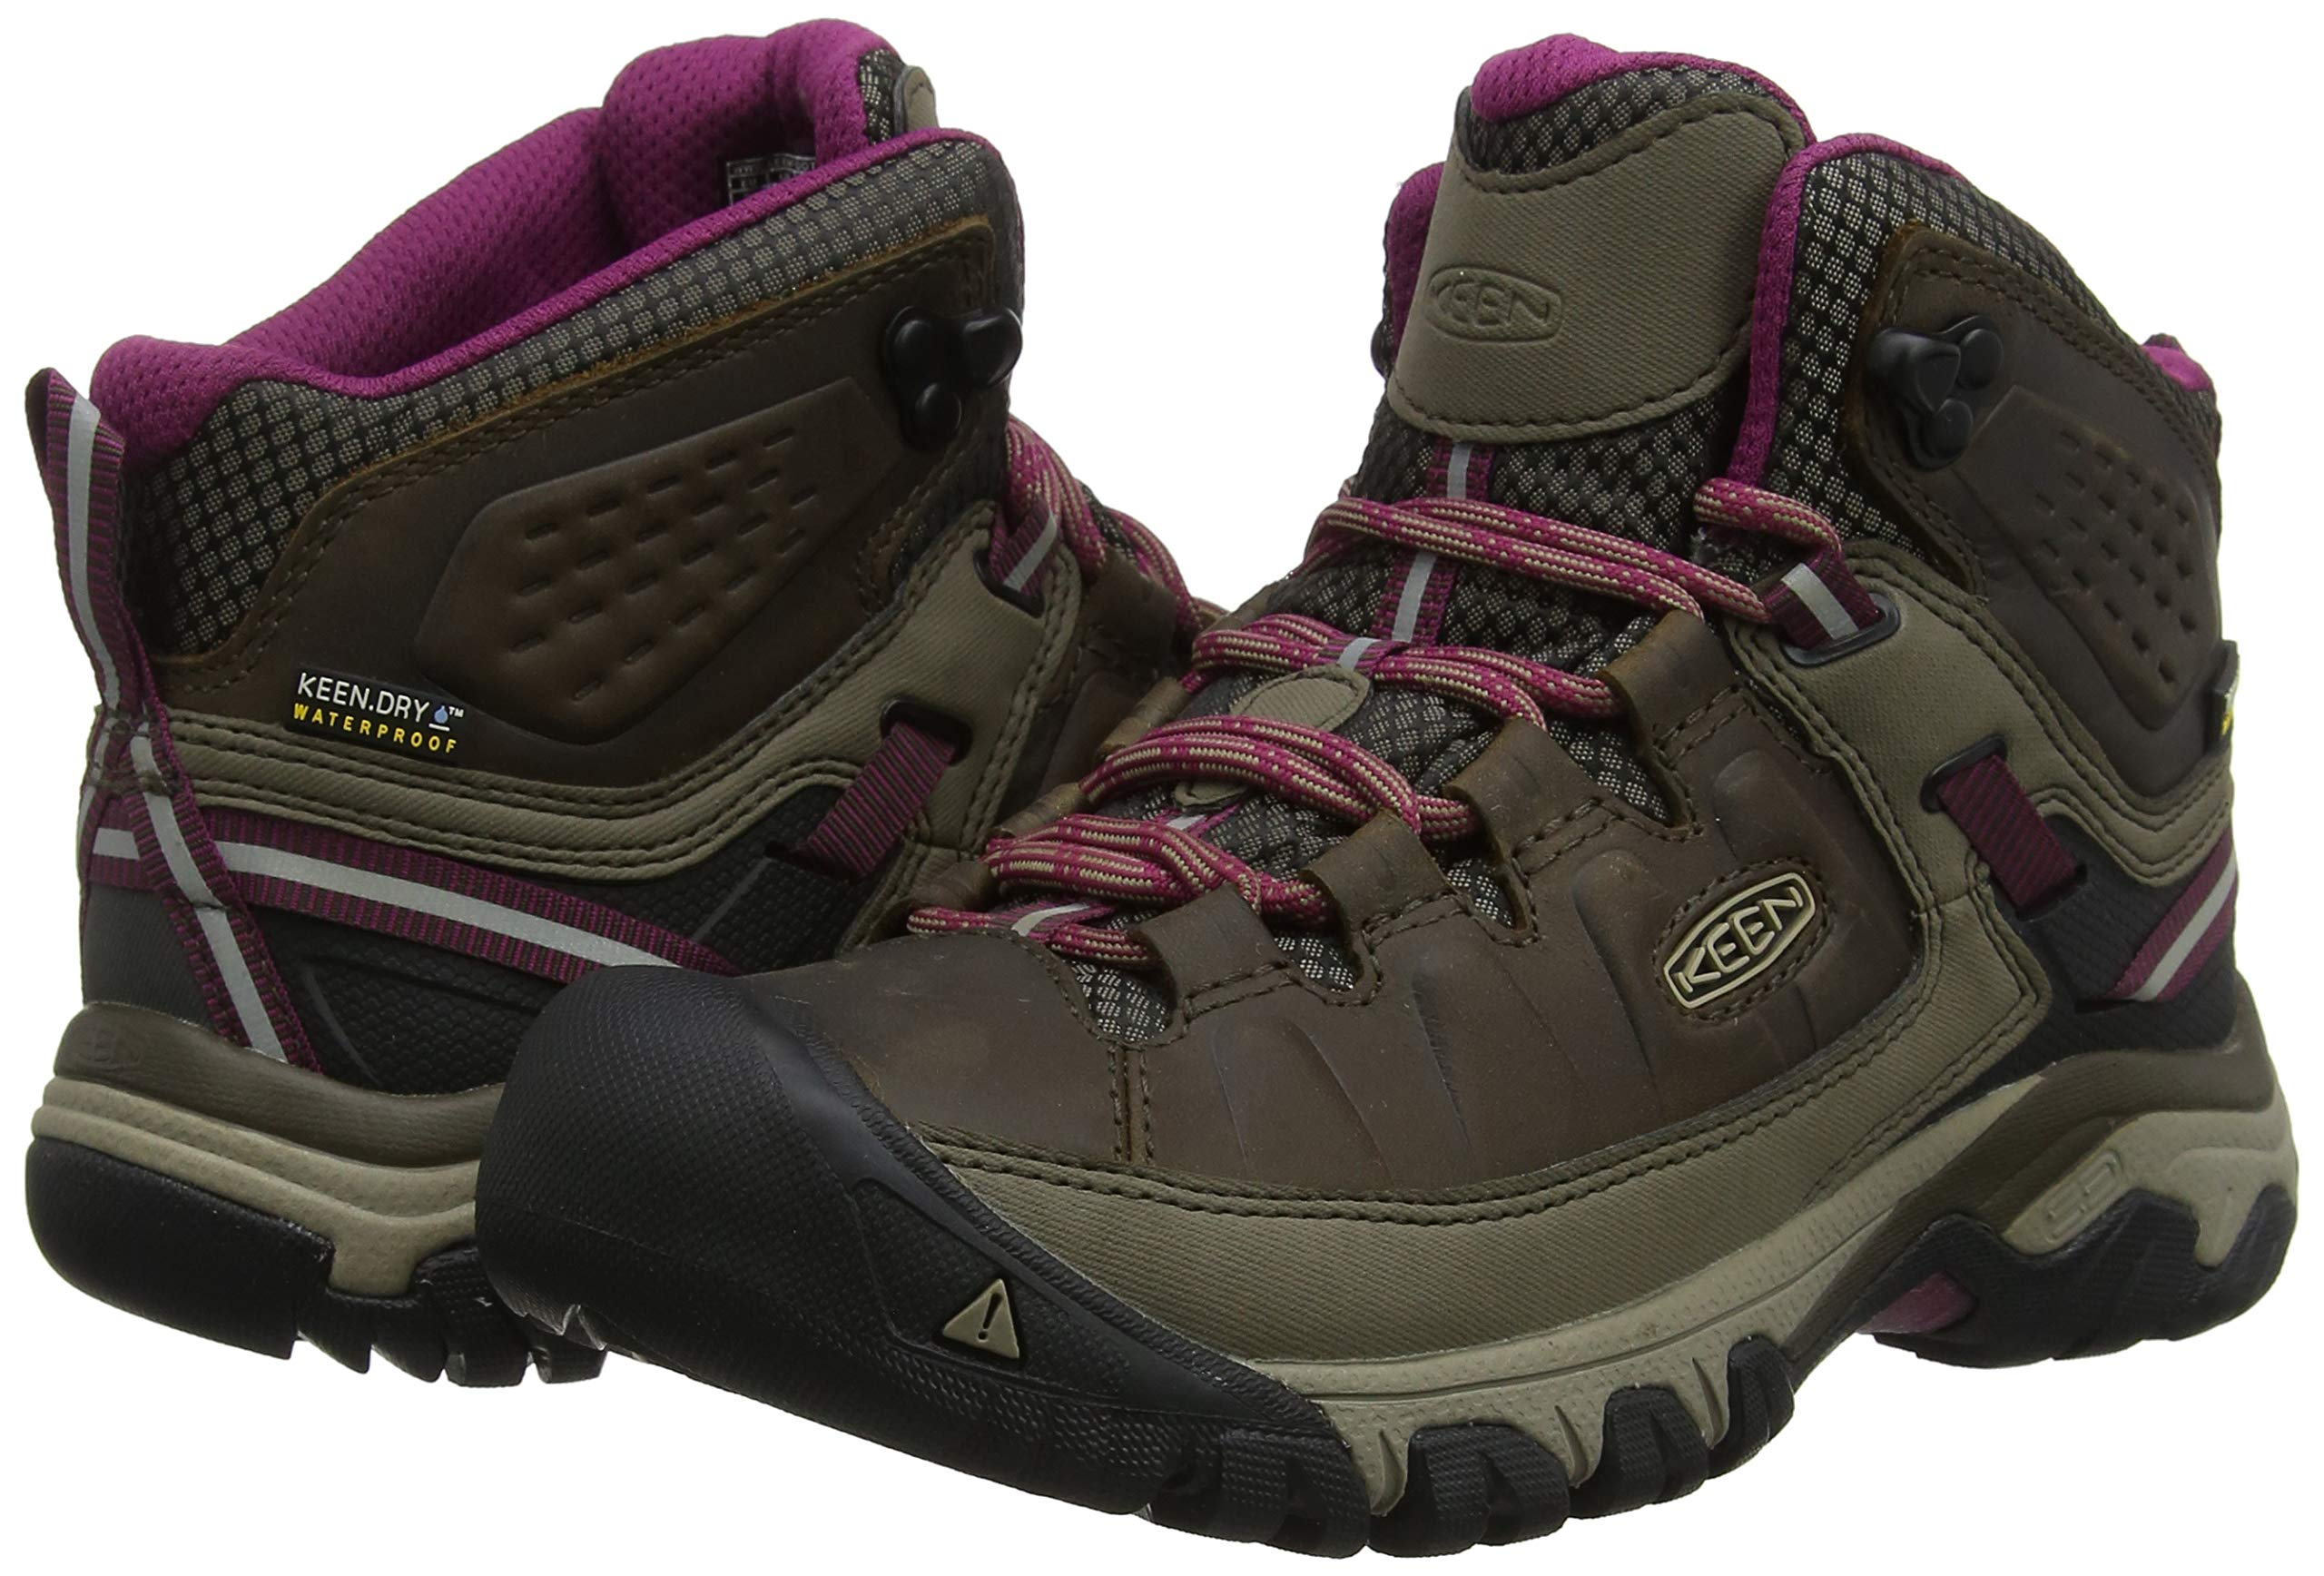 8e9efcb0f74 KEEN Women's Targhee Iii Mid Wp High Rise Hiking Shoes ...